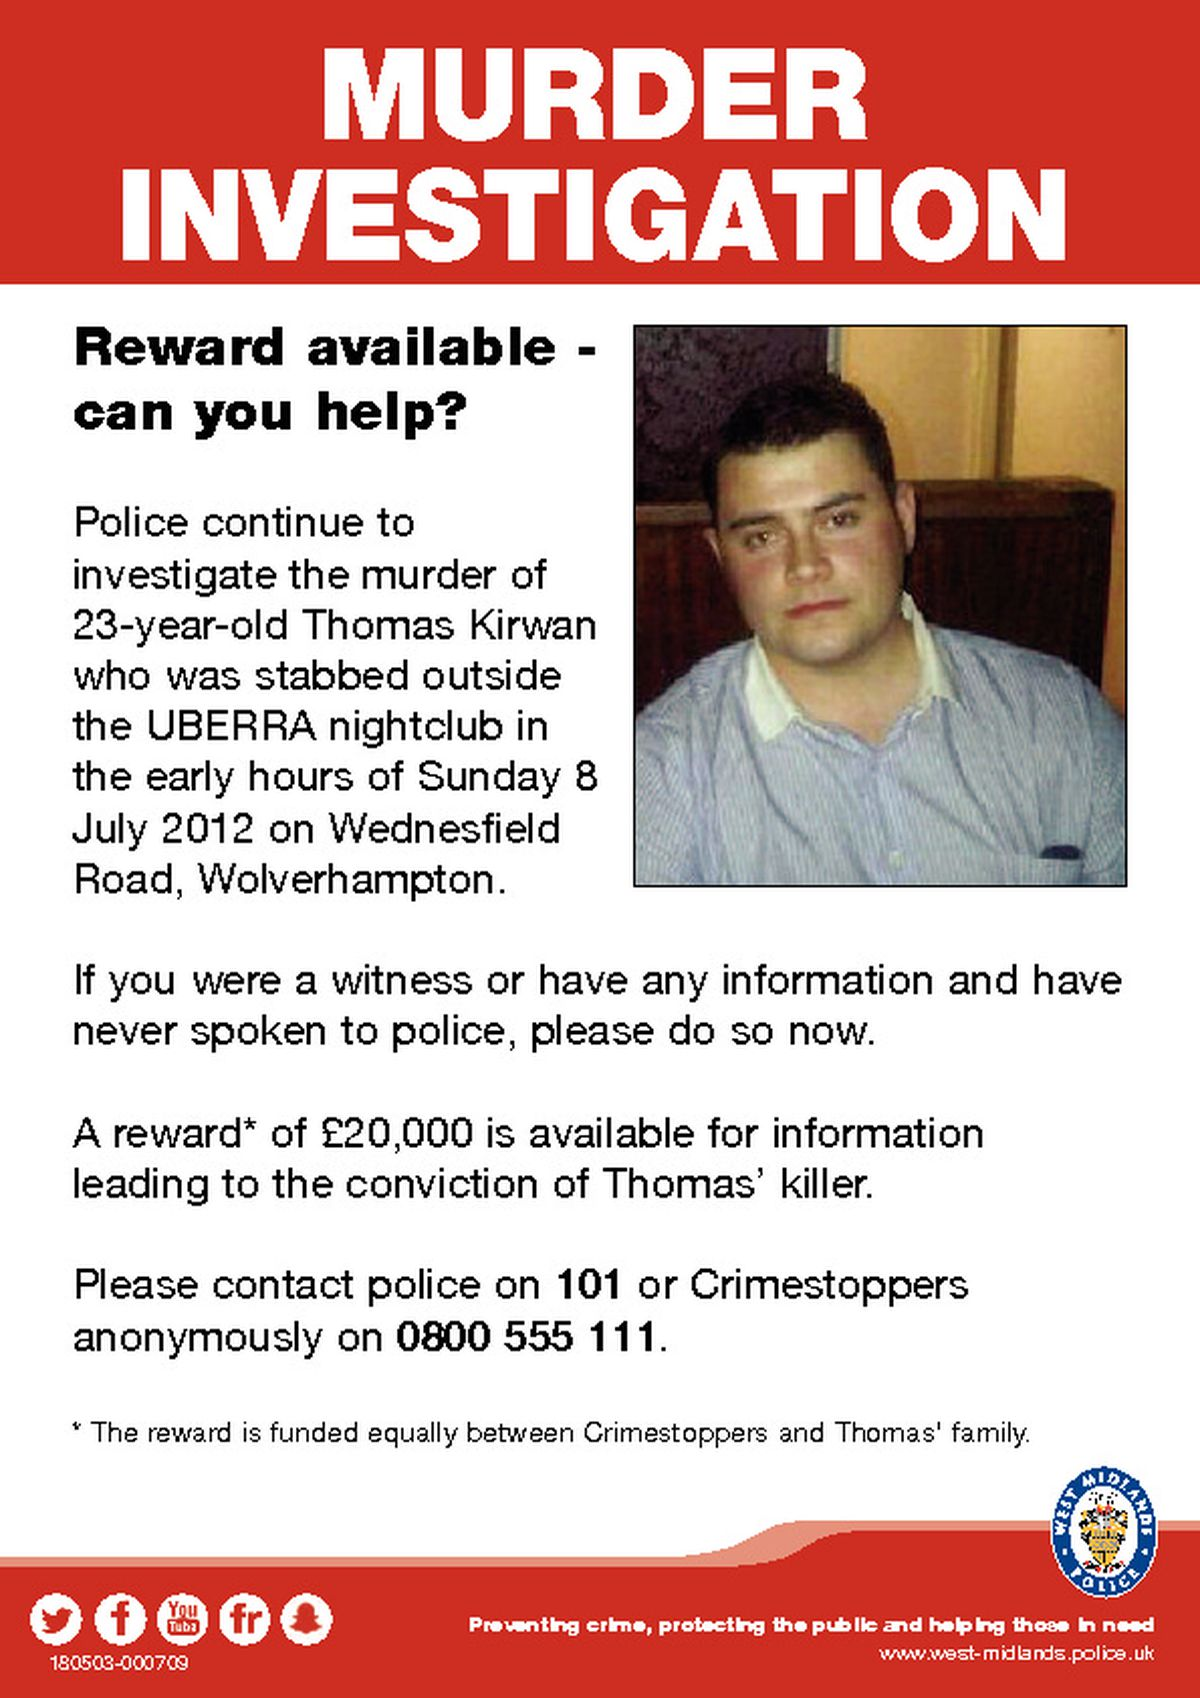 These new posters are being put up around Wolverhampton